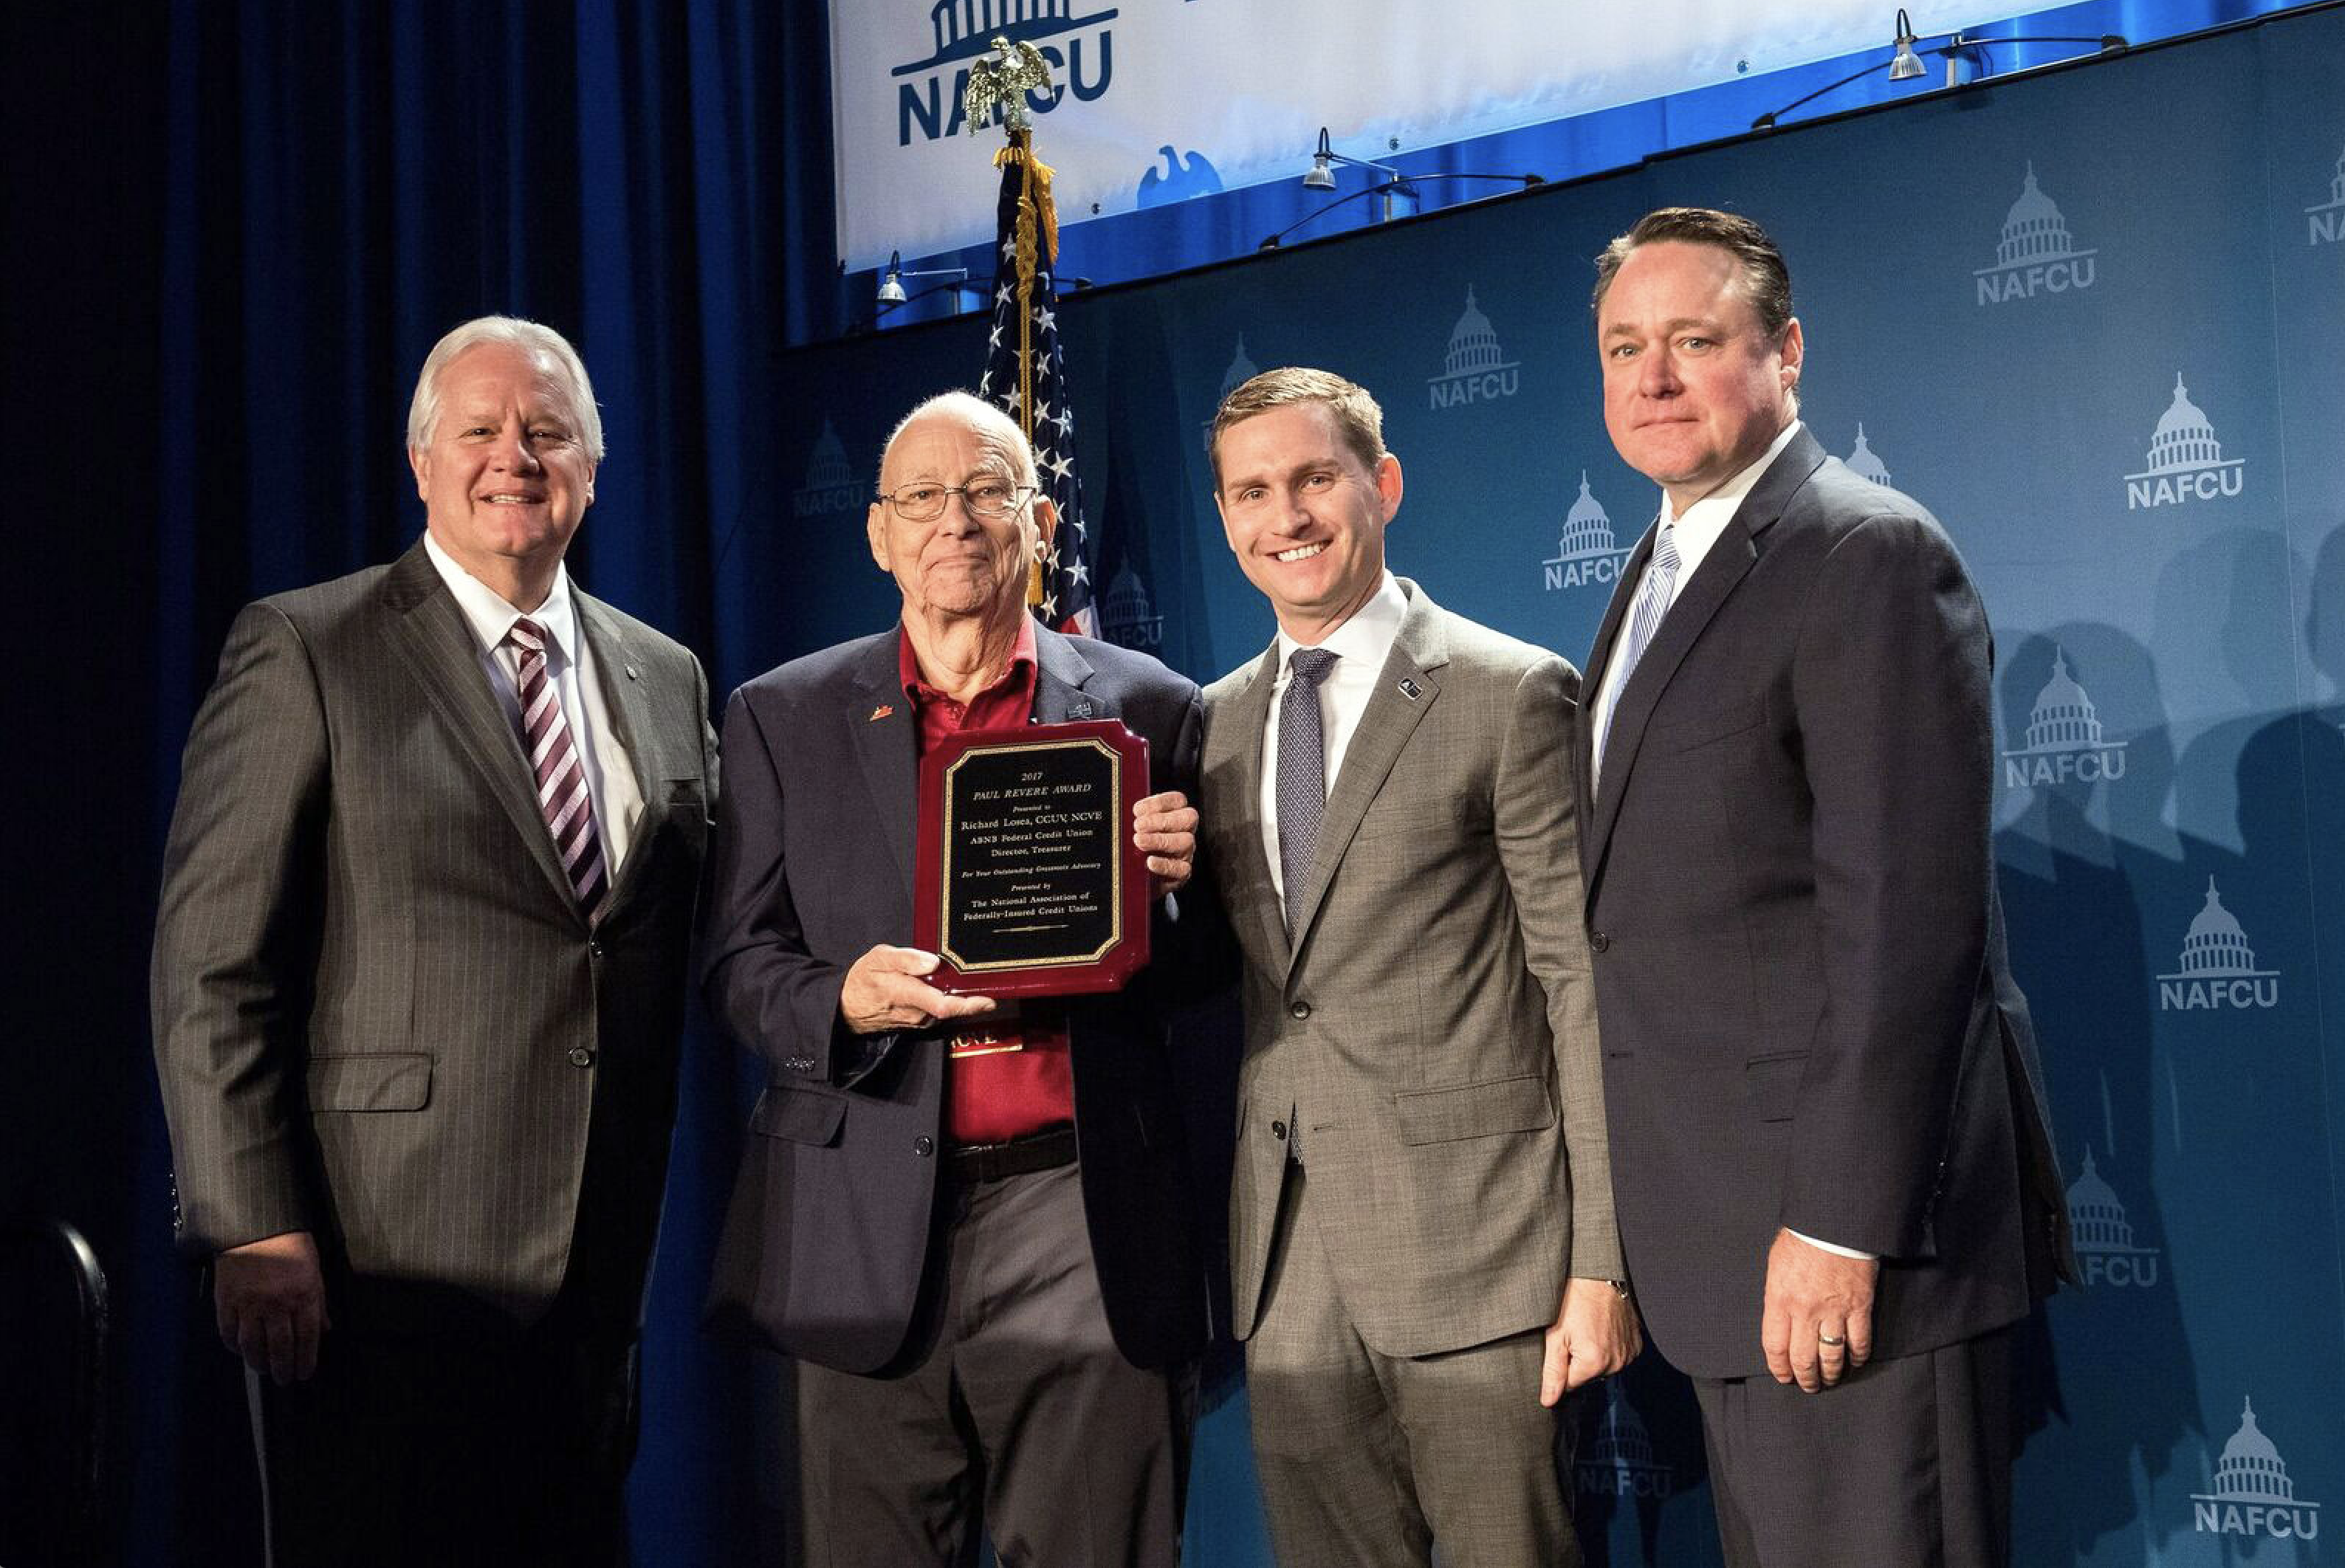 ABNB Board of Directors Treasurer Awarded with 2017 NAFCU Paul Revere Award